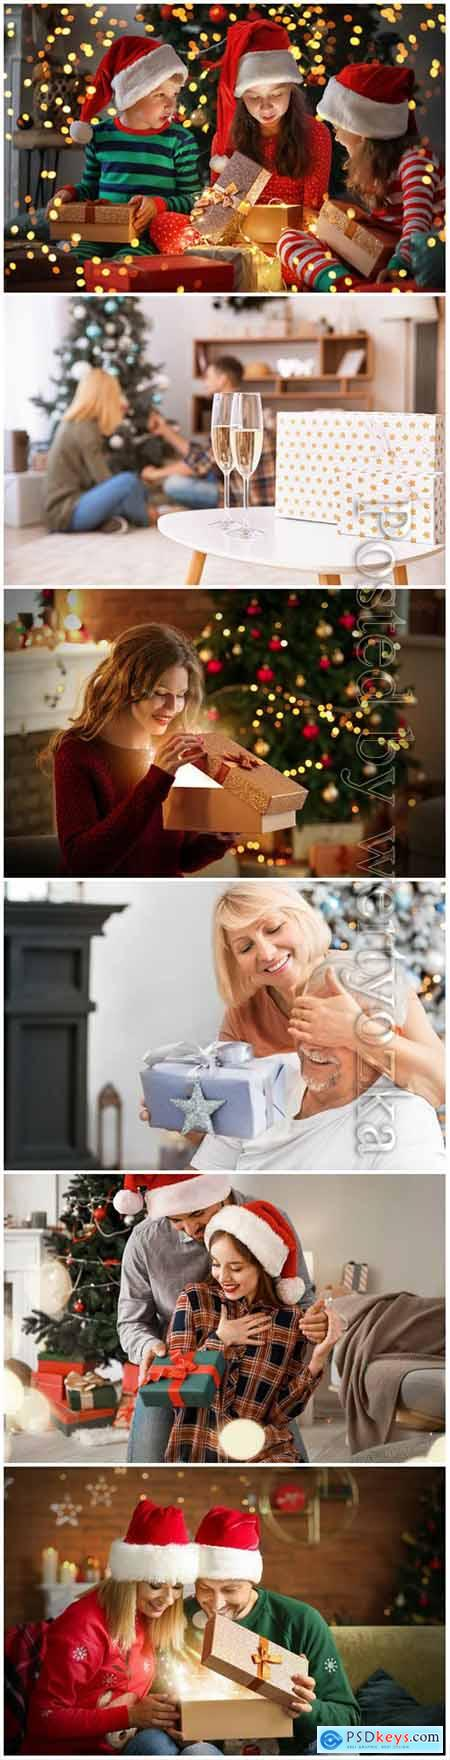 Happy people in Christmas, christmas presents